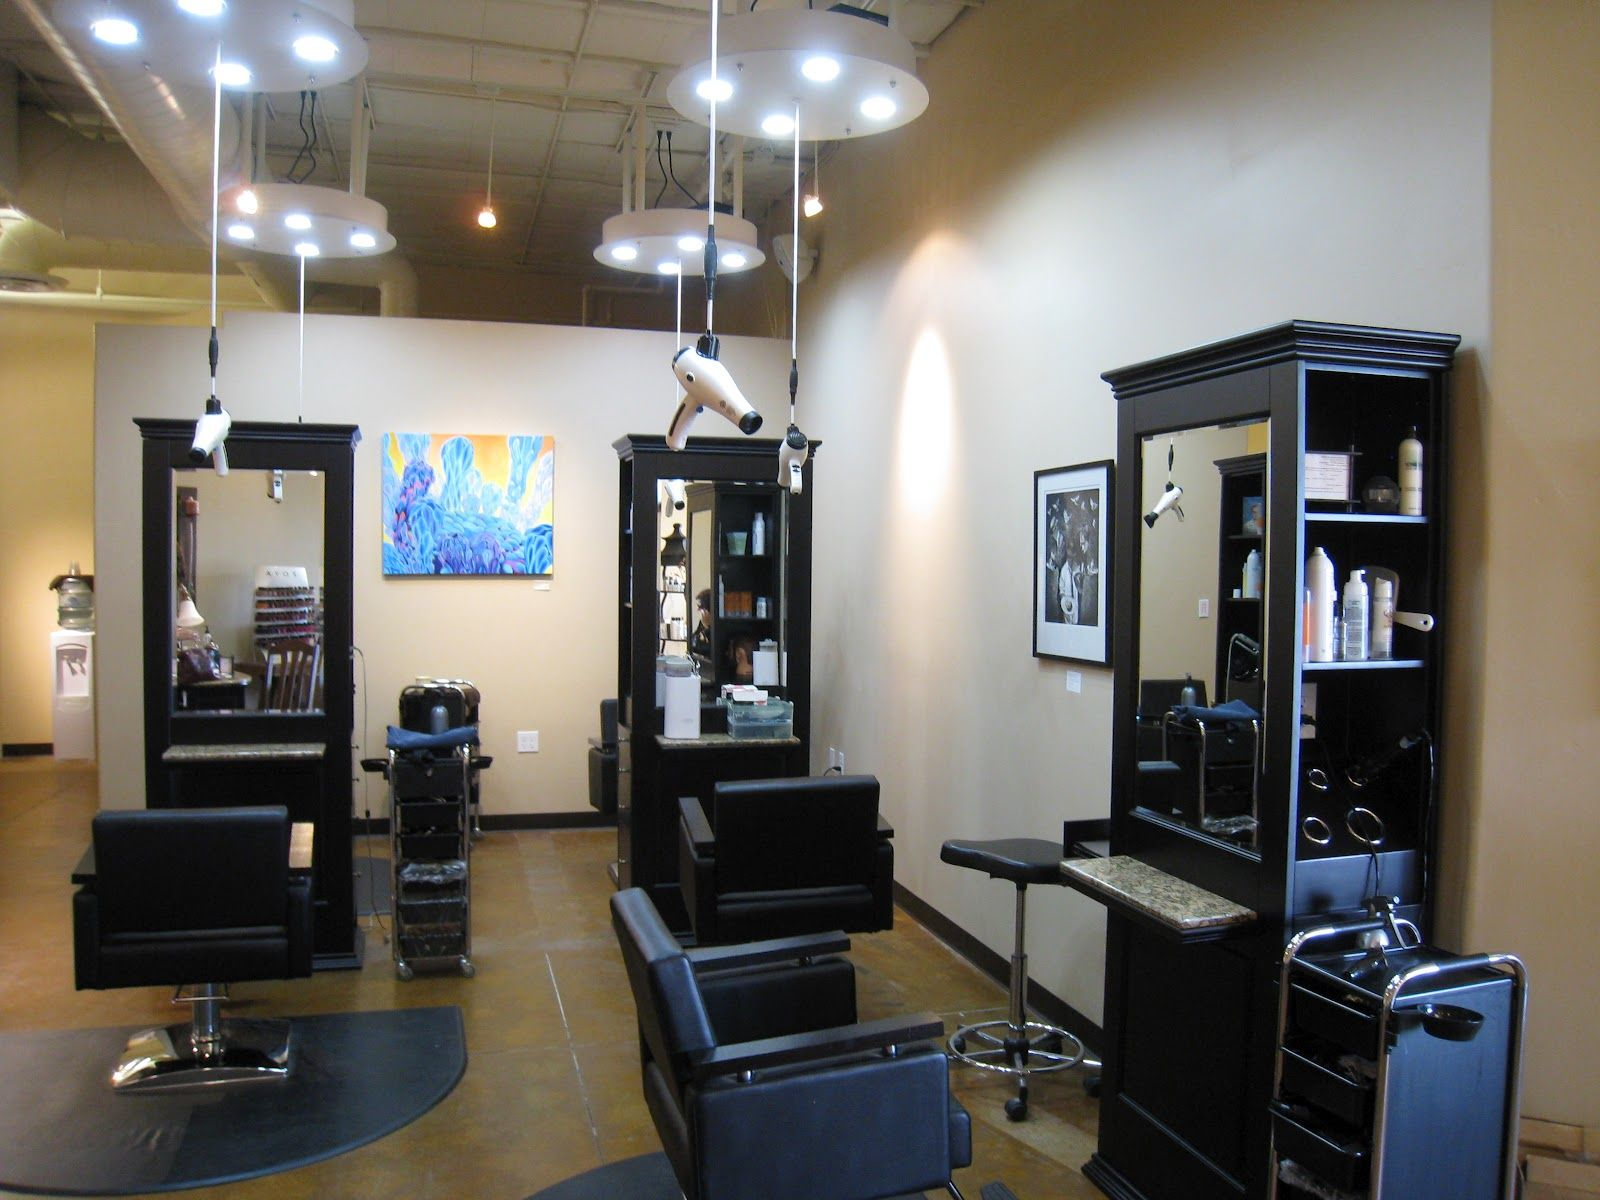 beauty salon interior design pictures photo image - Hair Salon Design Ideas